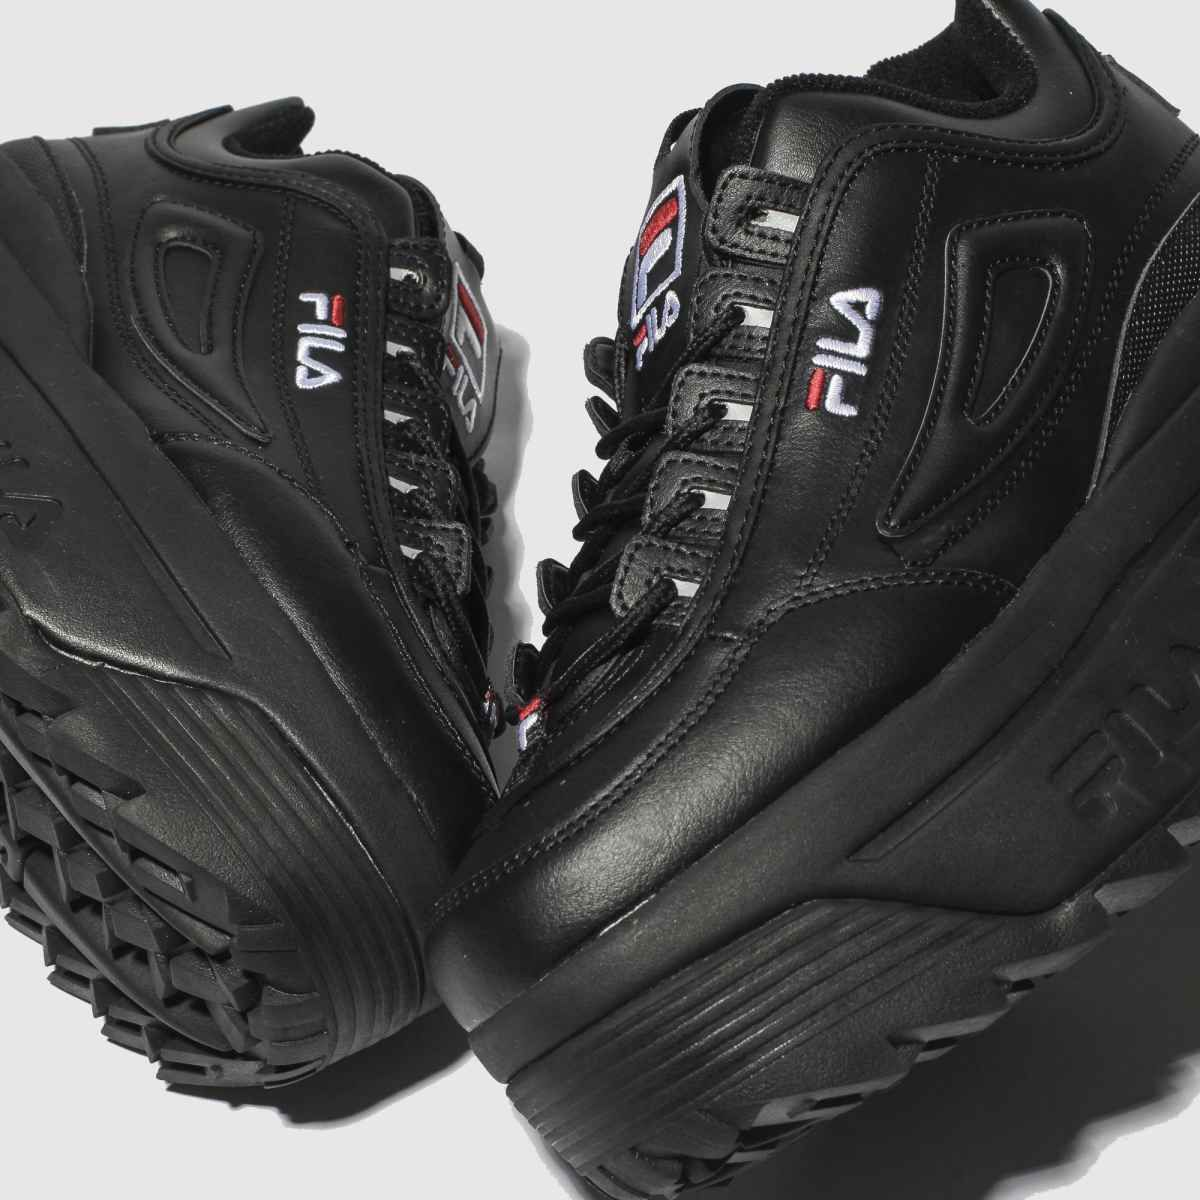 Fila Disruptor Halfsandal W shoes black